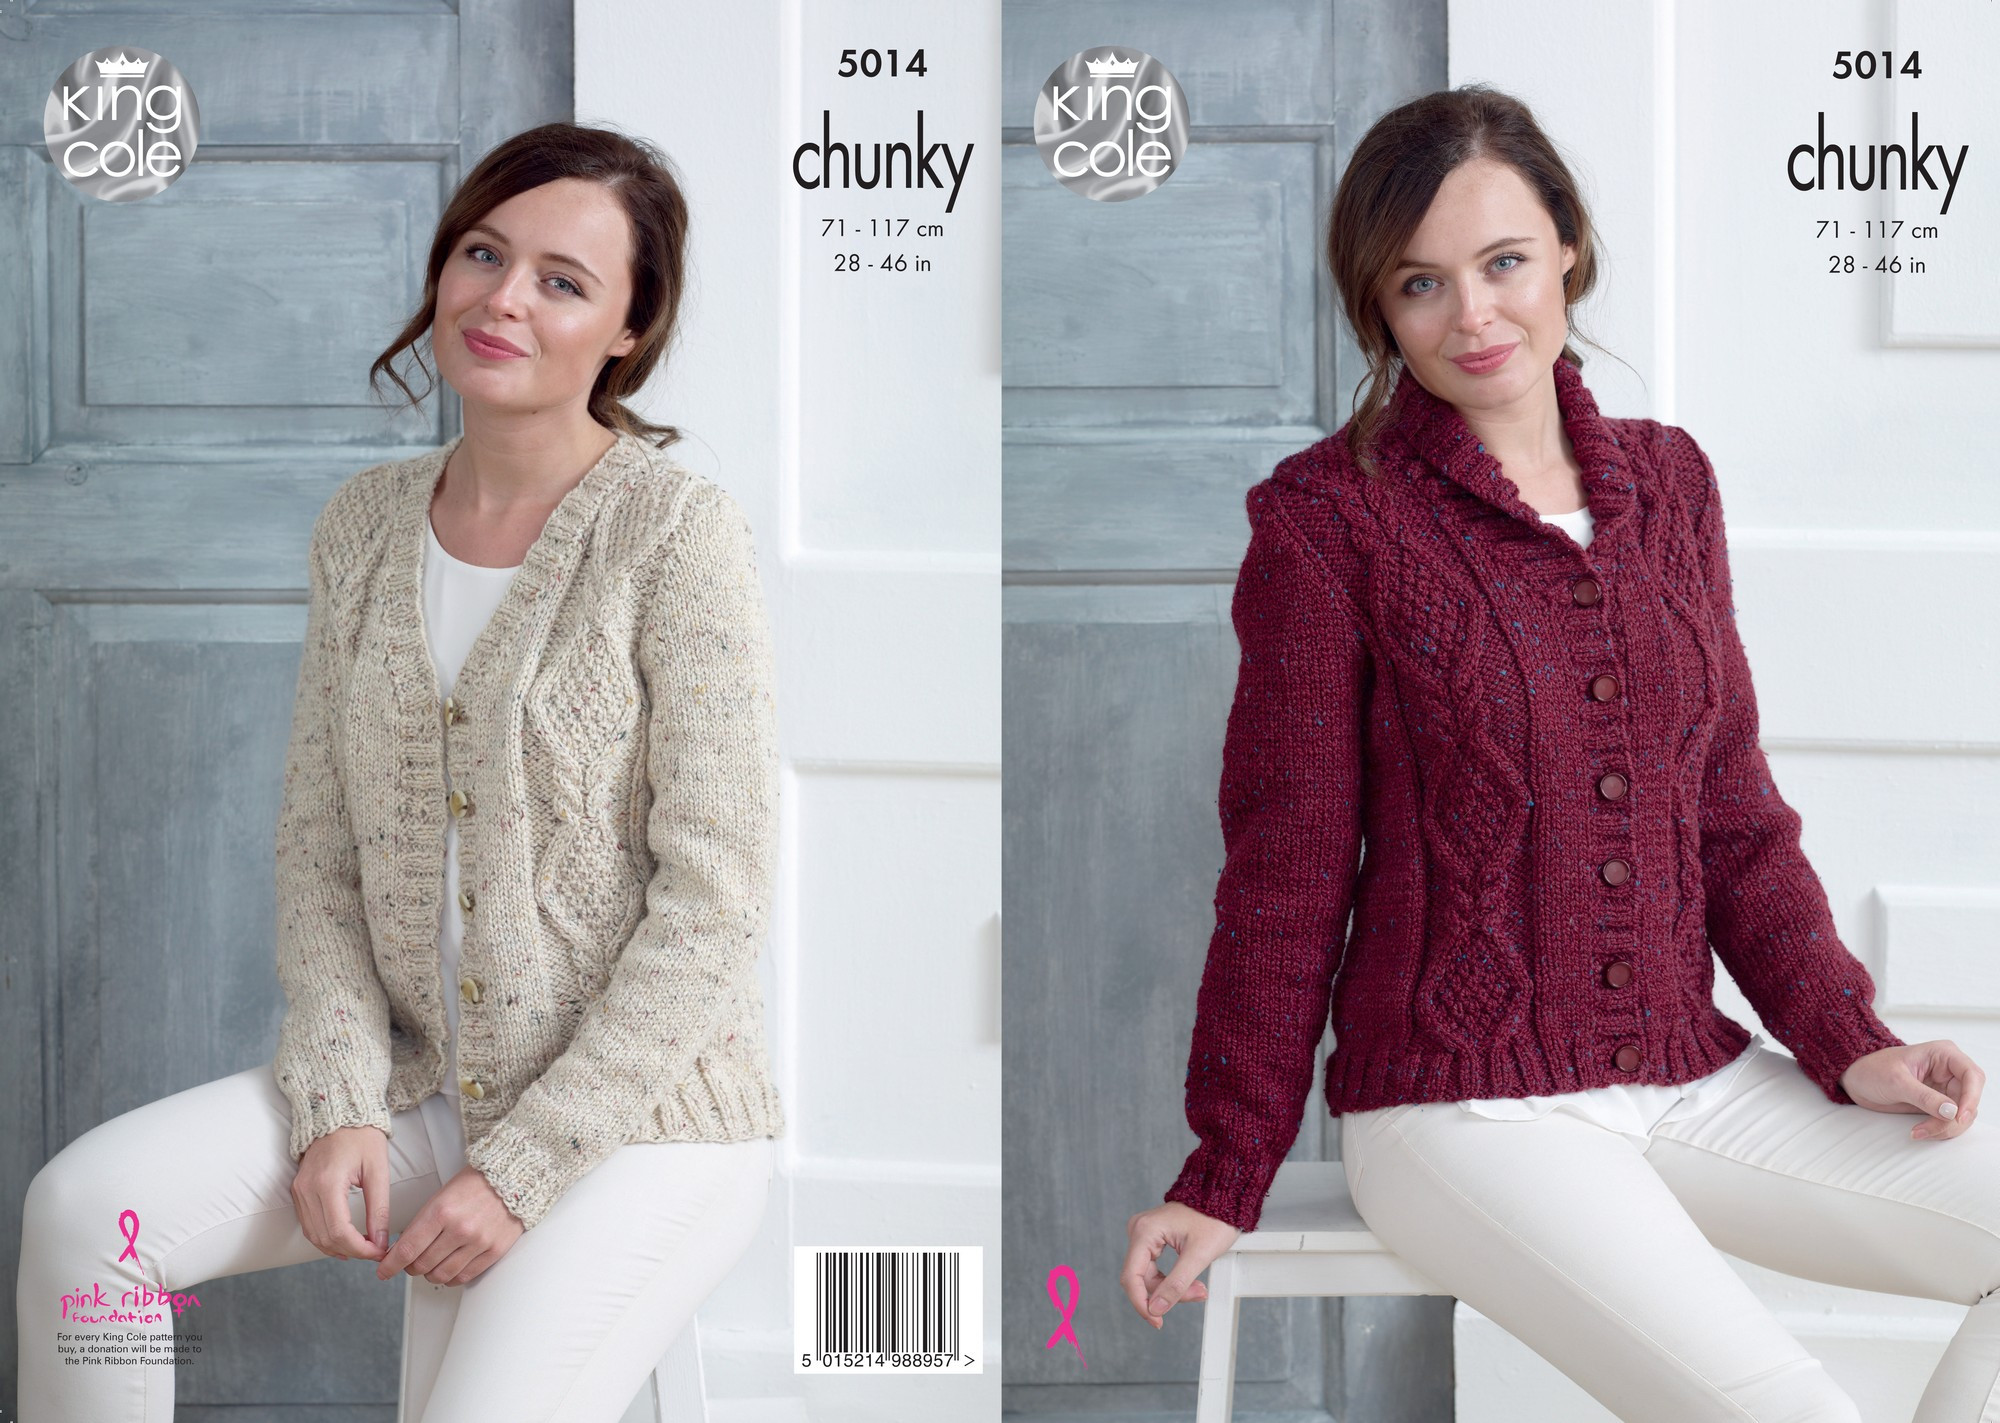 Cardigans in King Cole Chunky Tweed